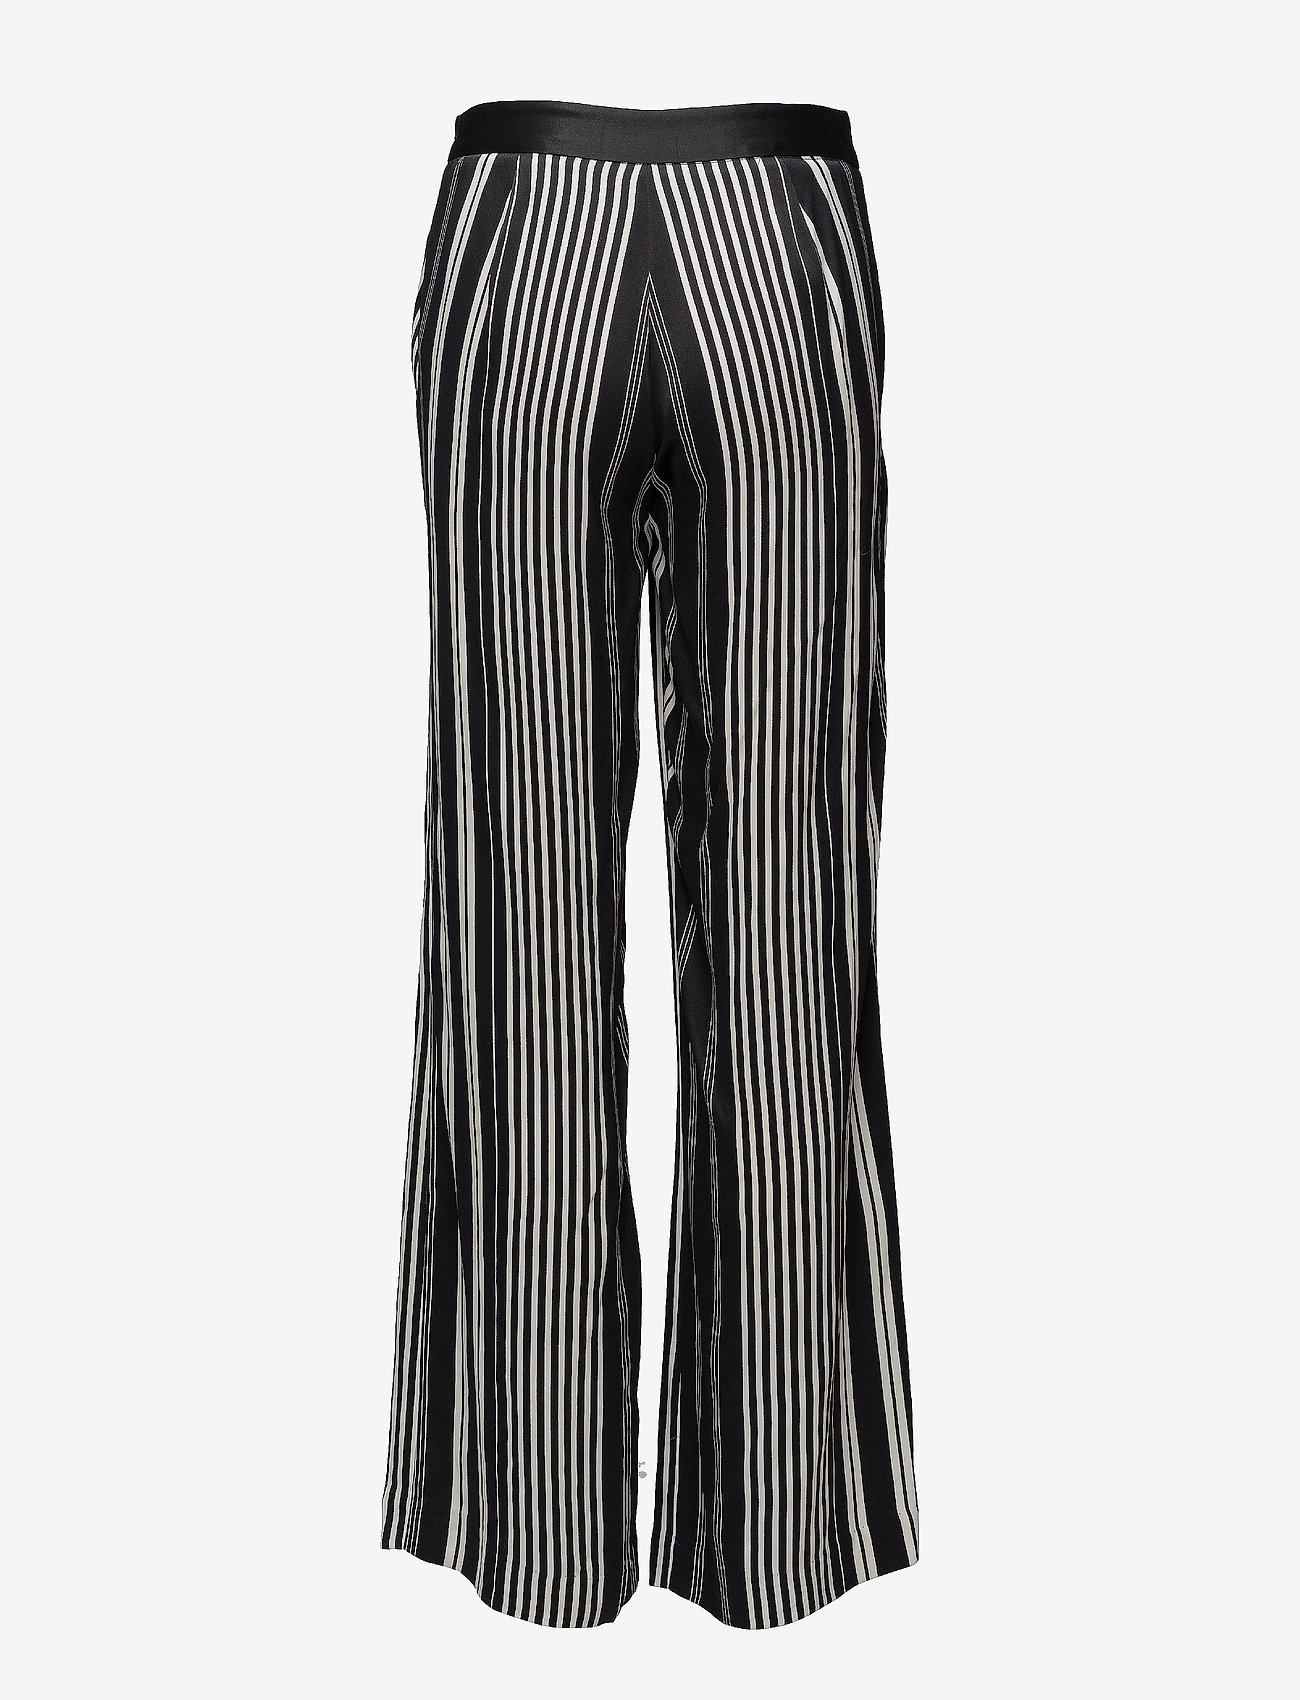 Anna Stripe Pant (Black/white Stripes) - Bruuns Bazaar LEyfyR